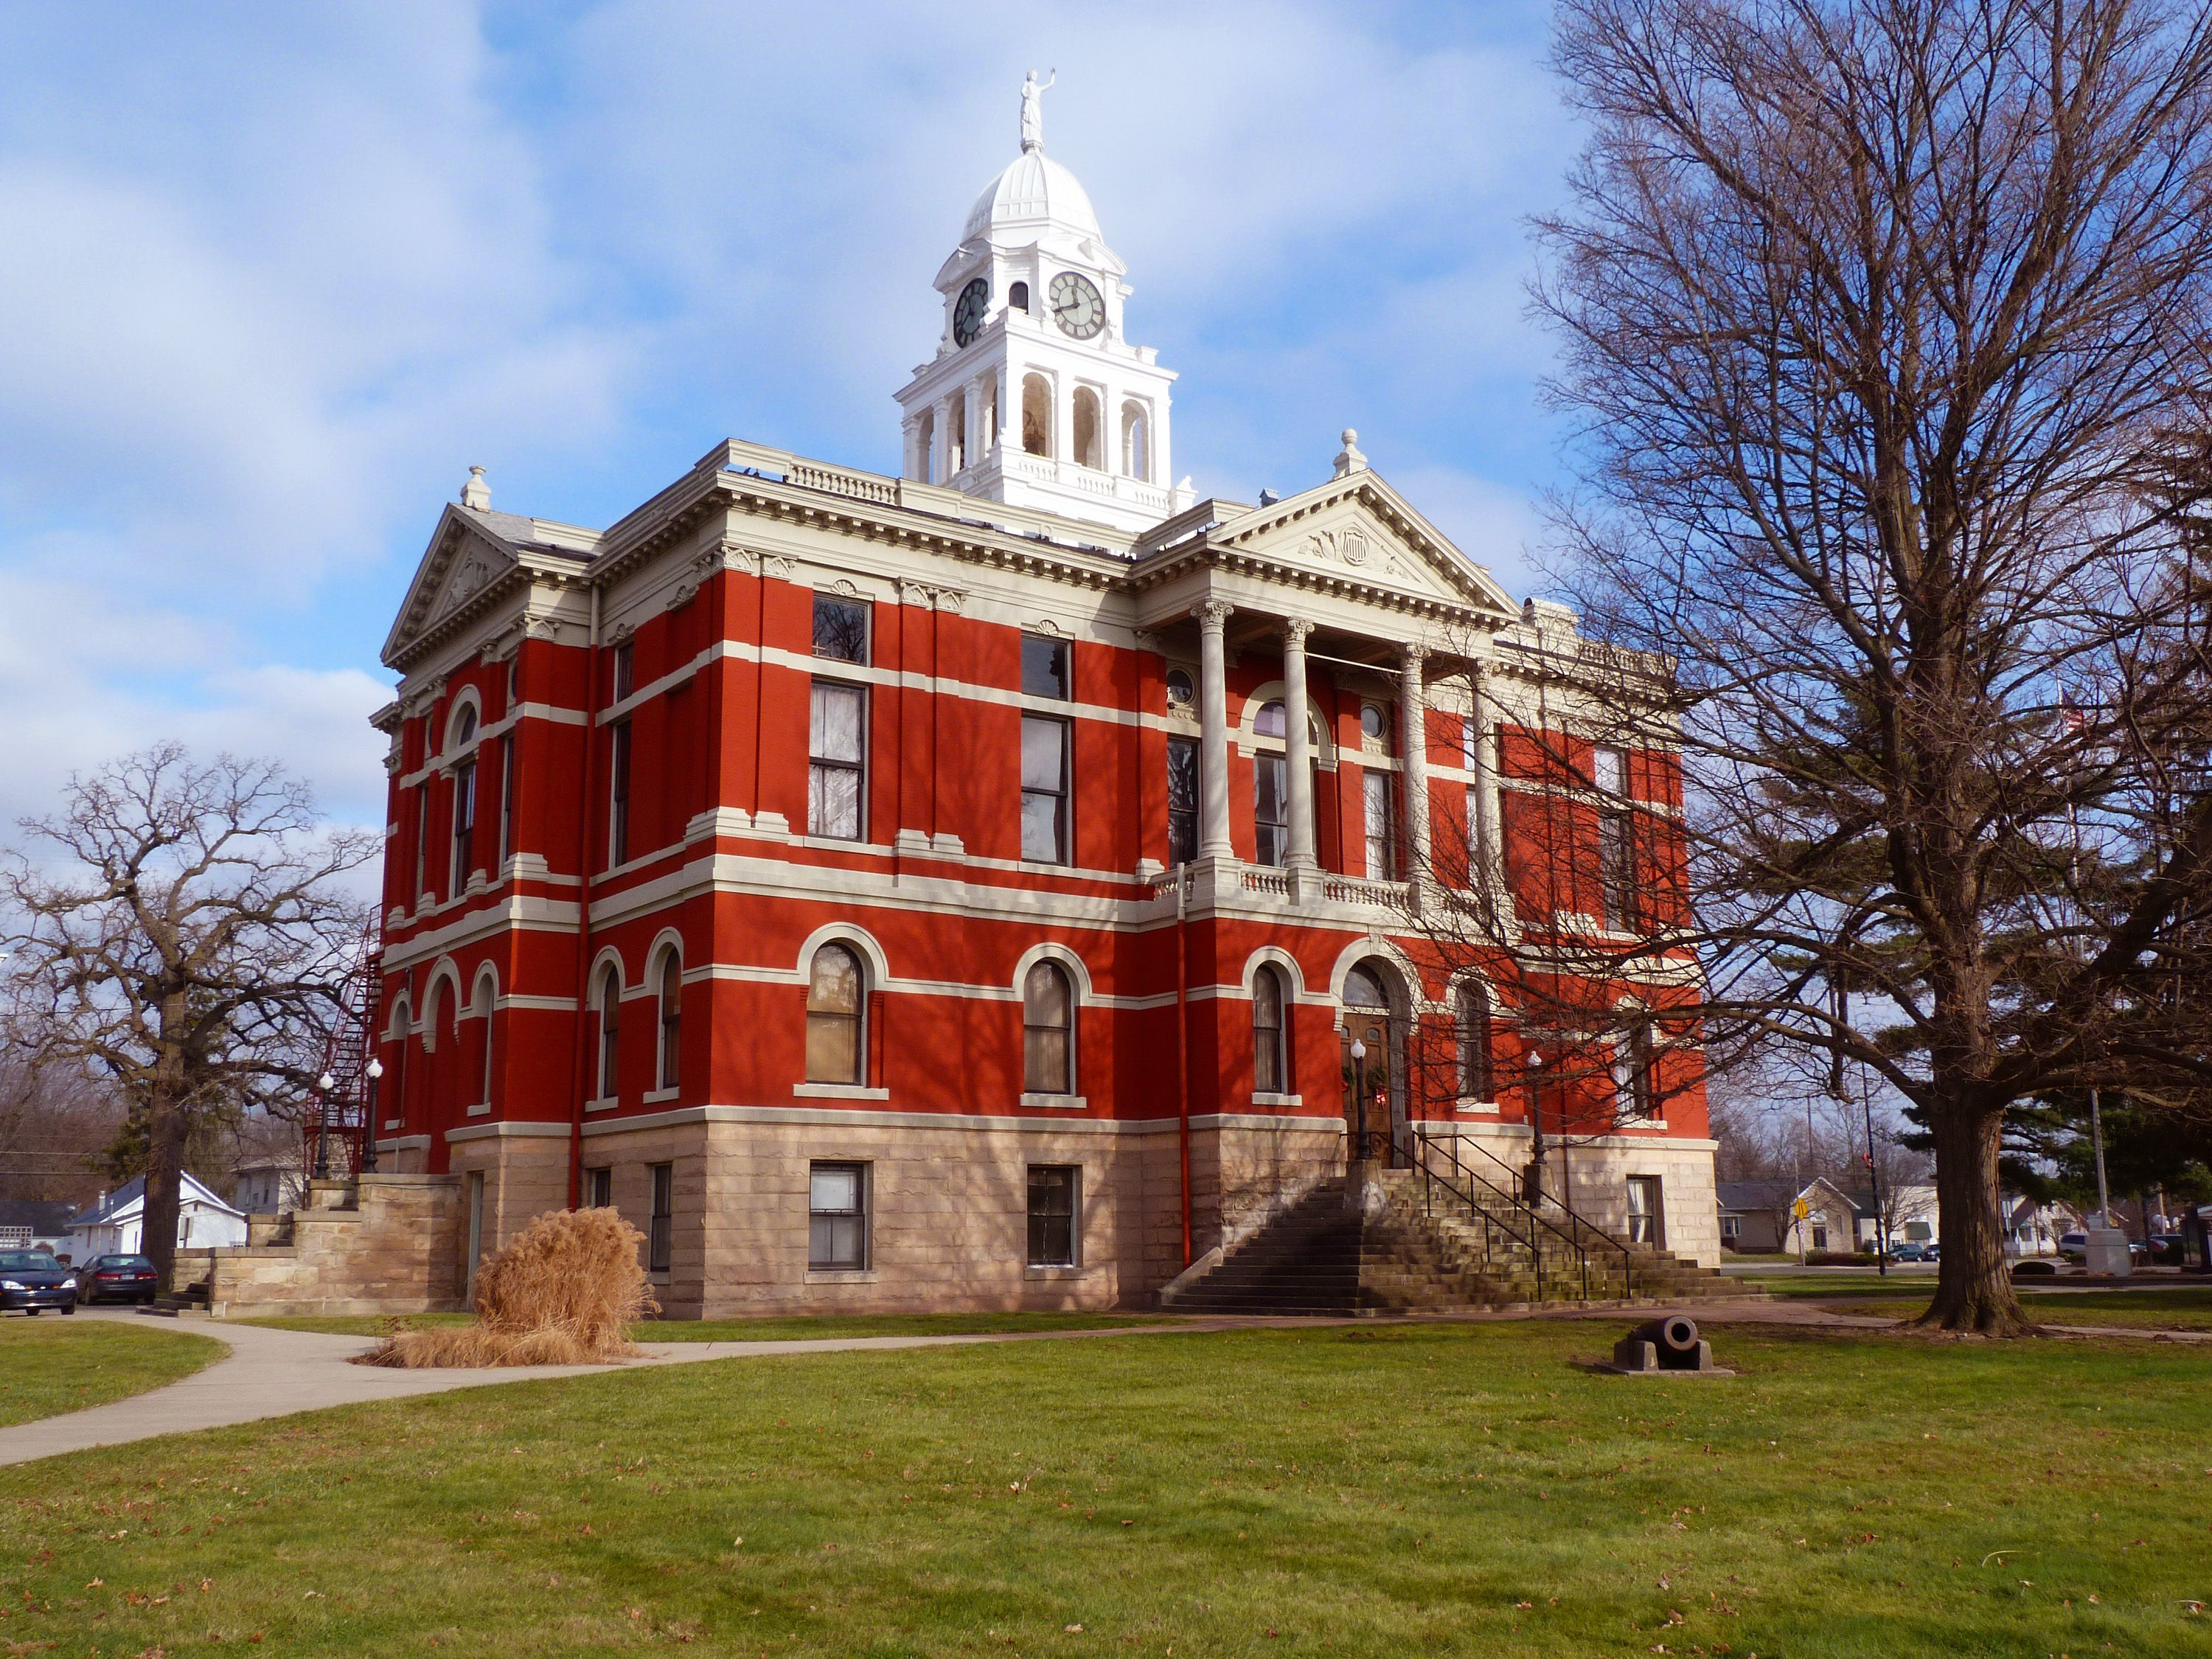 73954619f315985af3aa7593b0908b77 - How To Get Married In Michigan In A Courthouse